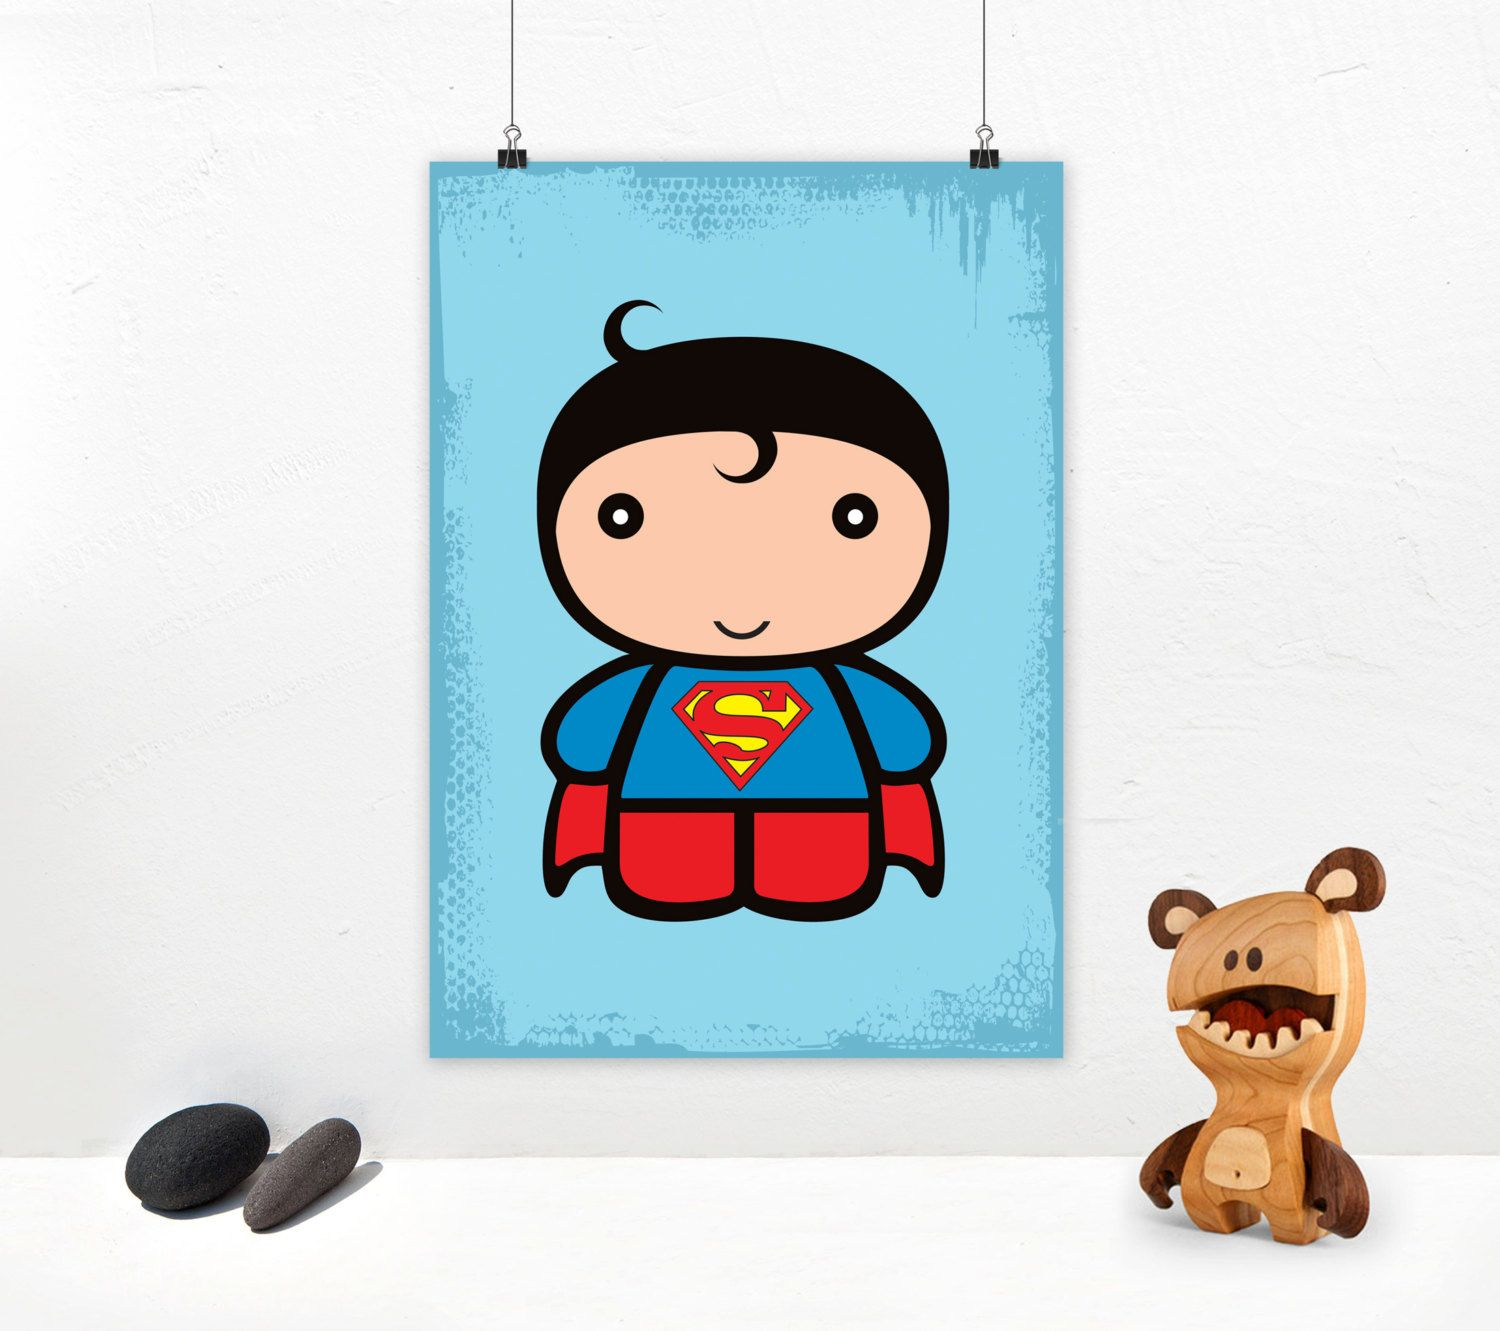 superman baby art print superhero illustration with cute superman baby poster design for instant download size a4 a3 by graphiccorner on etsy